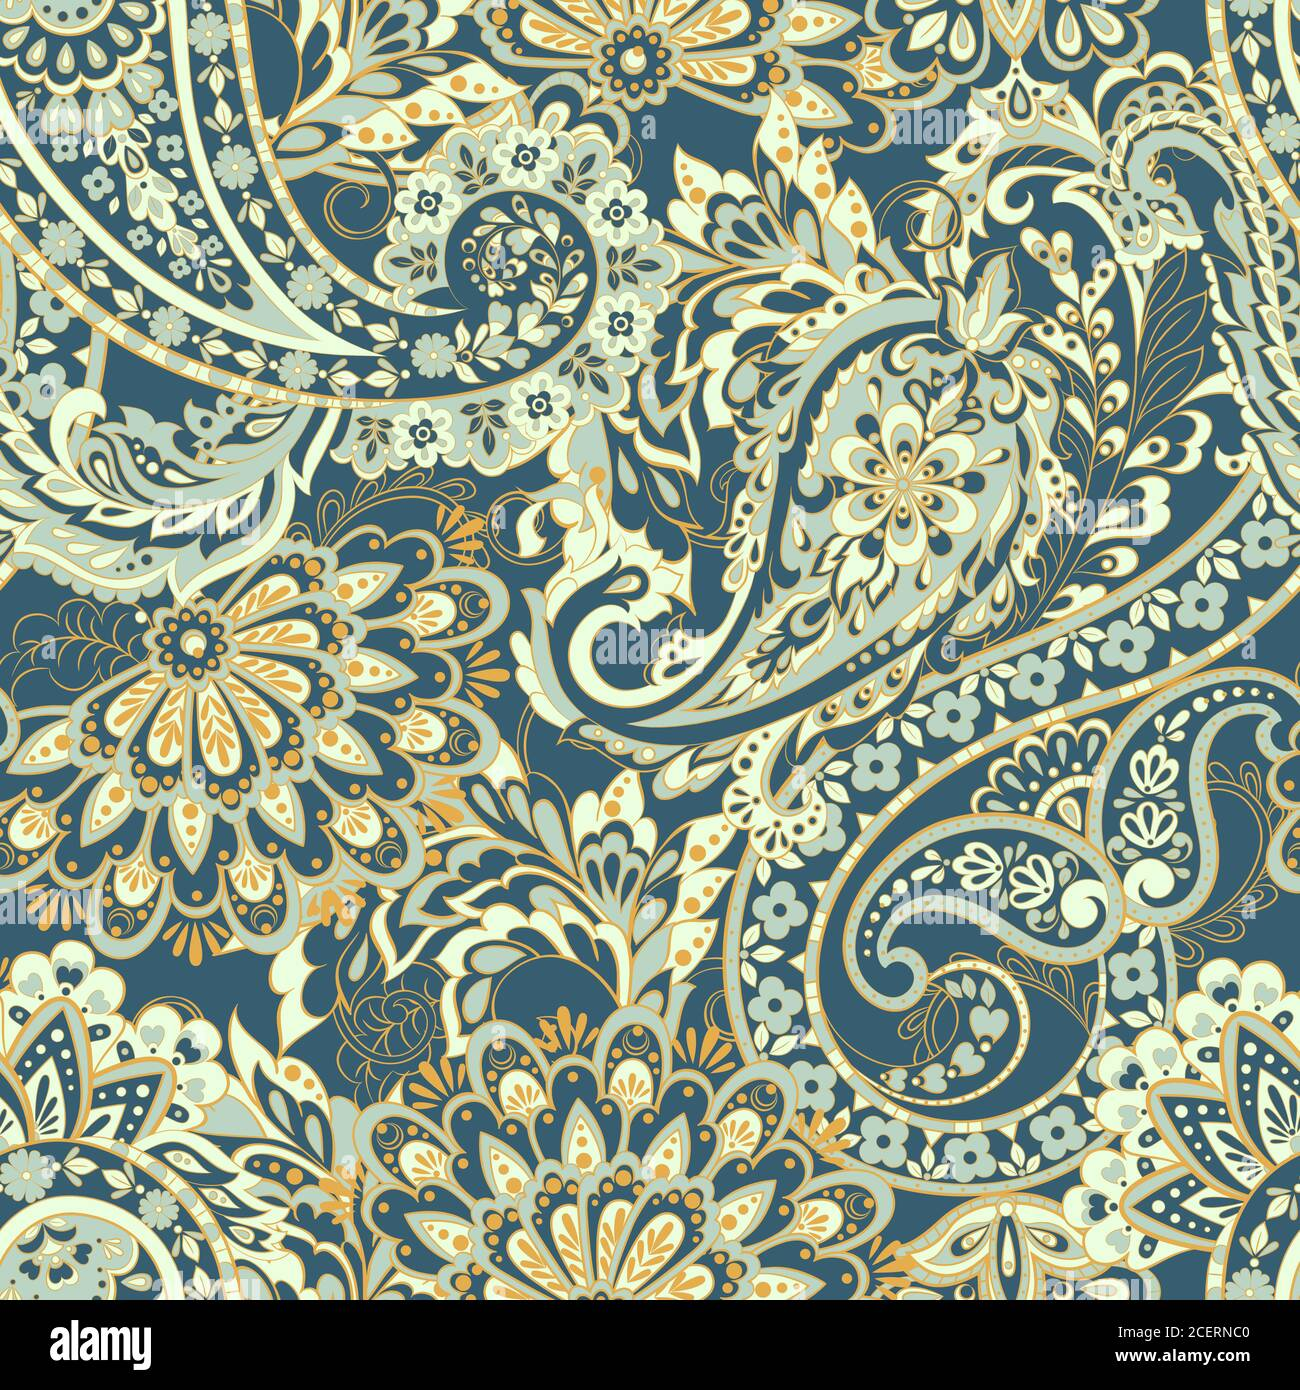 Damask Style Seamless Pattern Floral Vector Wallpaper Stock Vector Image Art Alamy